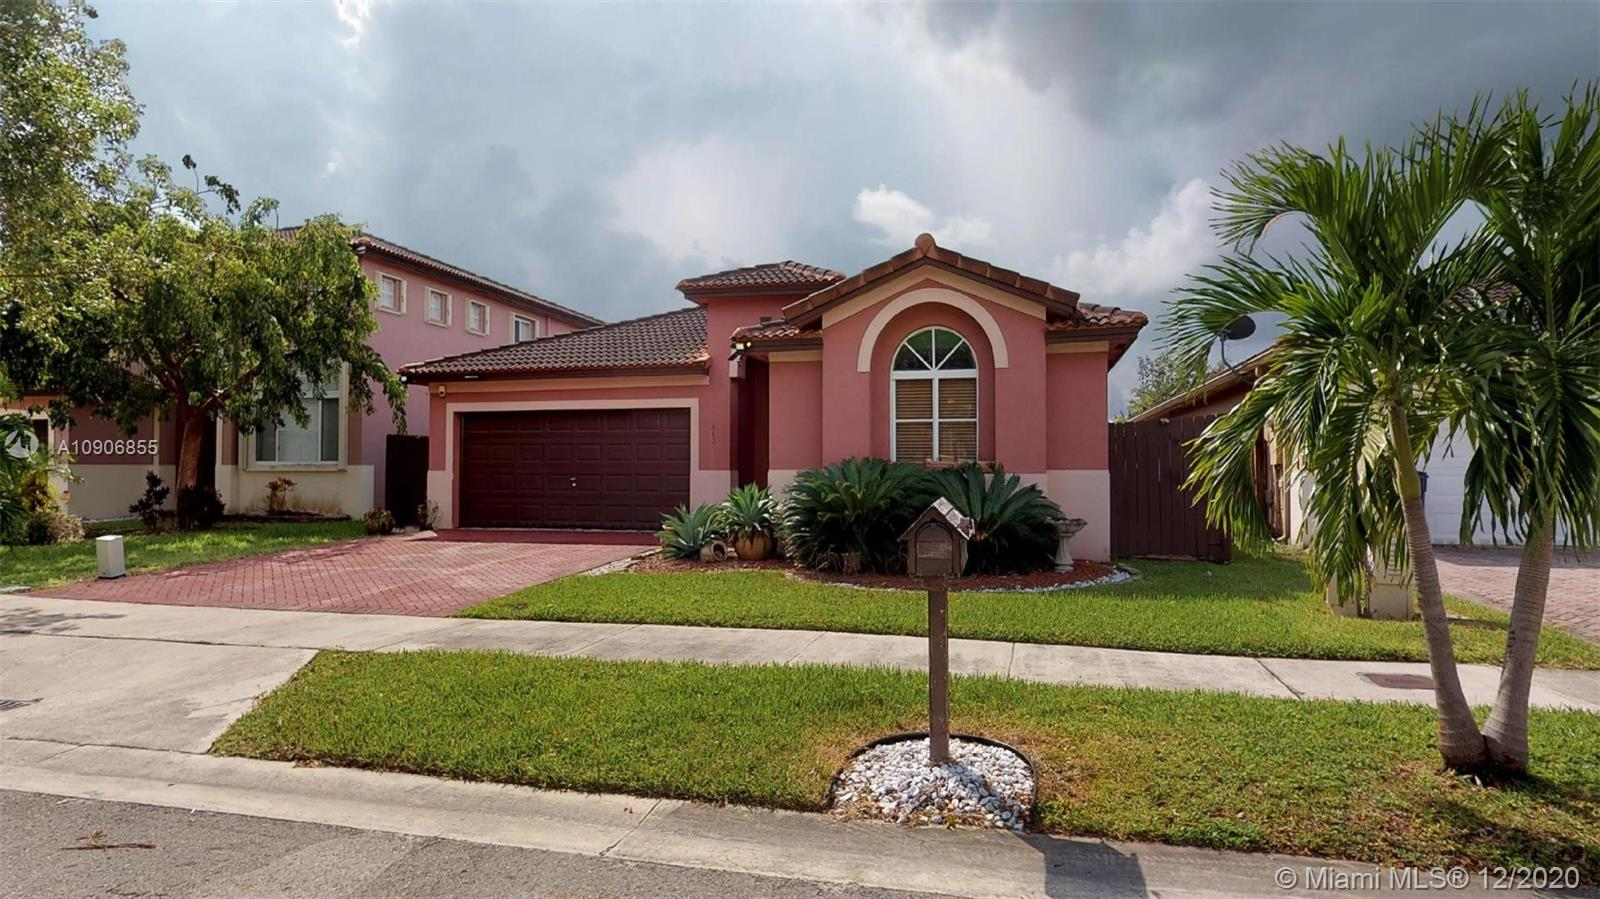 13342 SW 283rd St Property Photo - Homestead, FL real estate listing